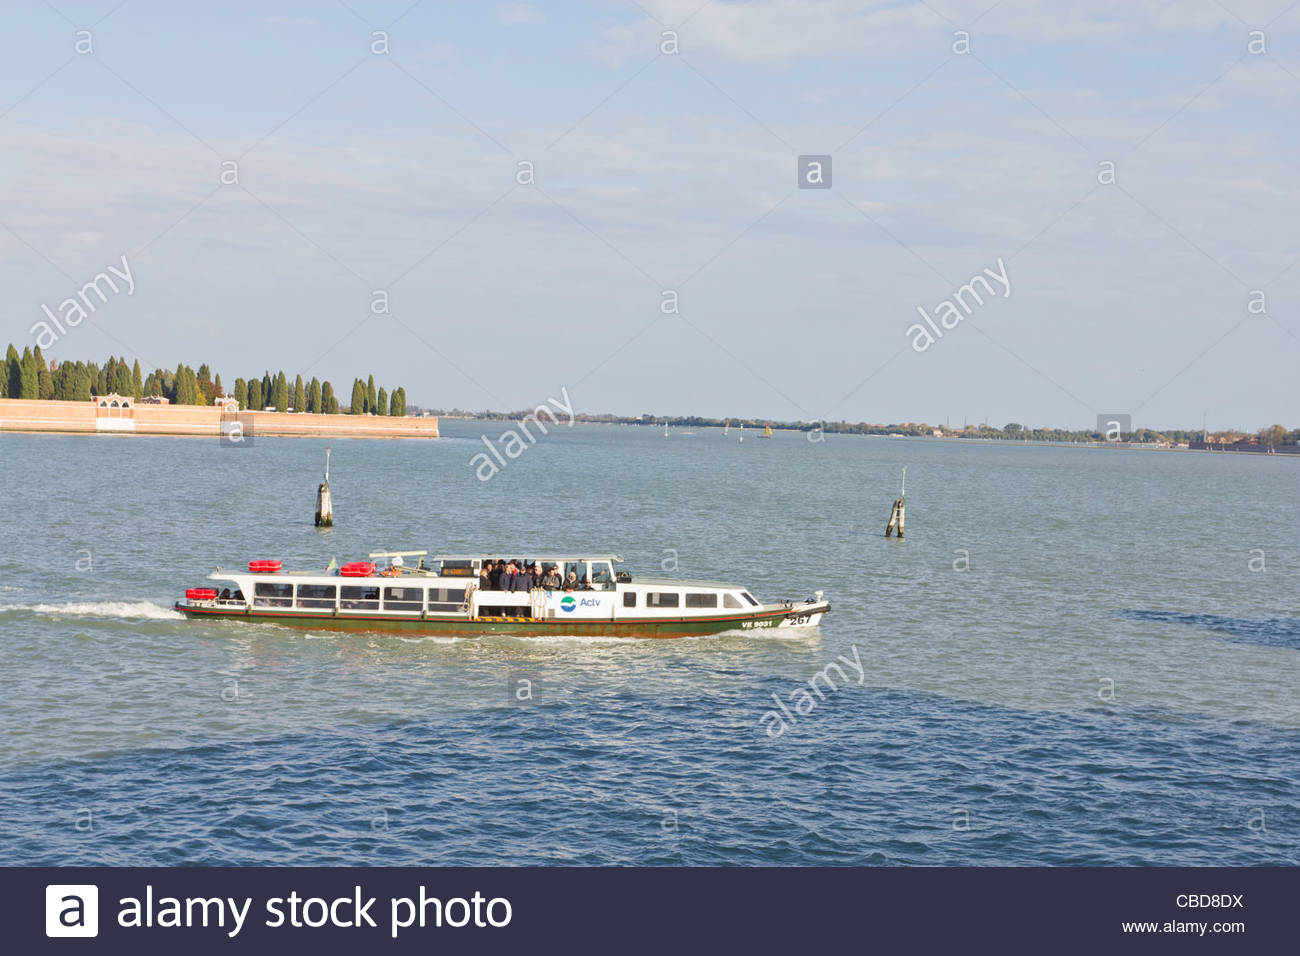 Vaporetto (water bus) in main lagoon in Venice, Italy - Stock Image